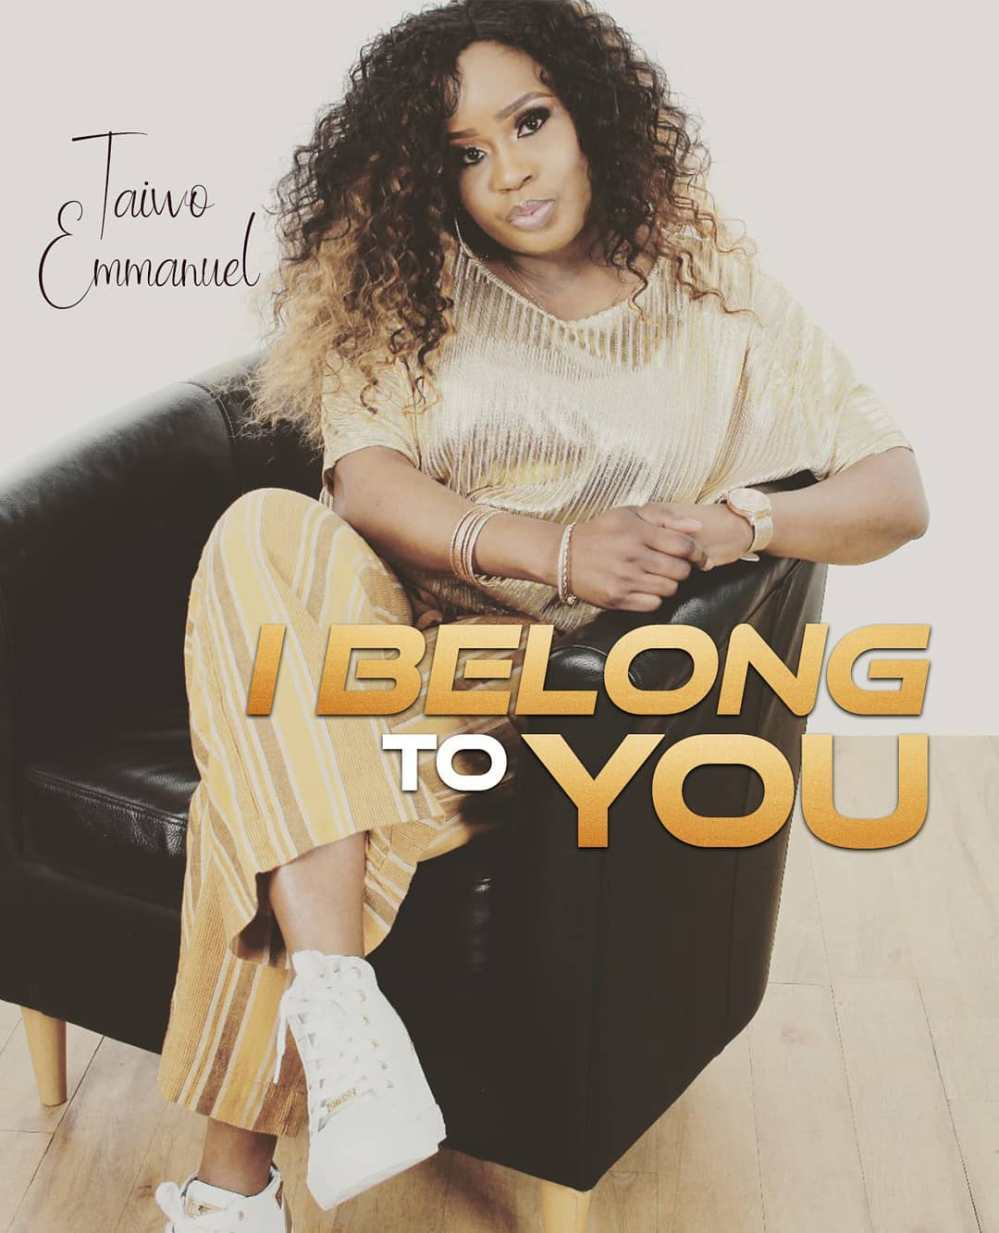 I Belong To You cover